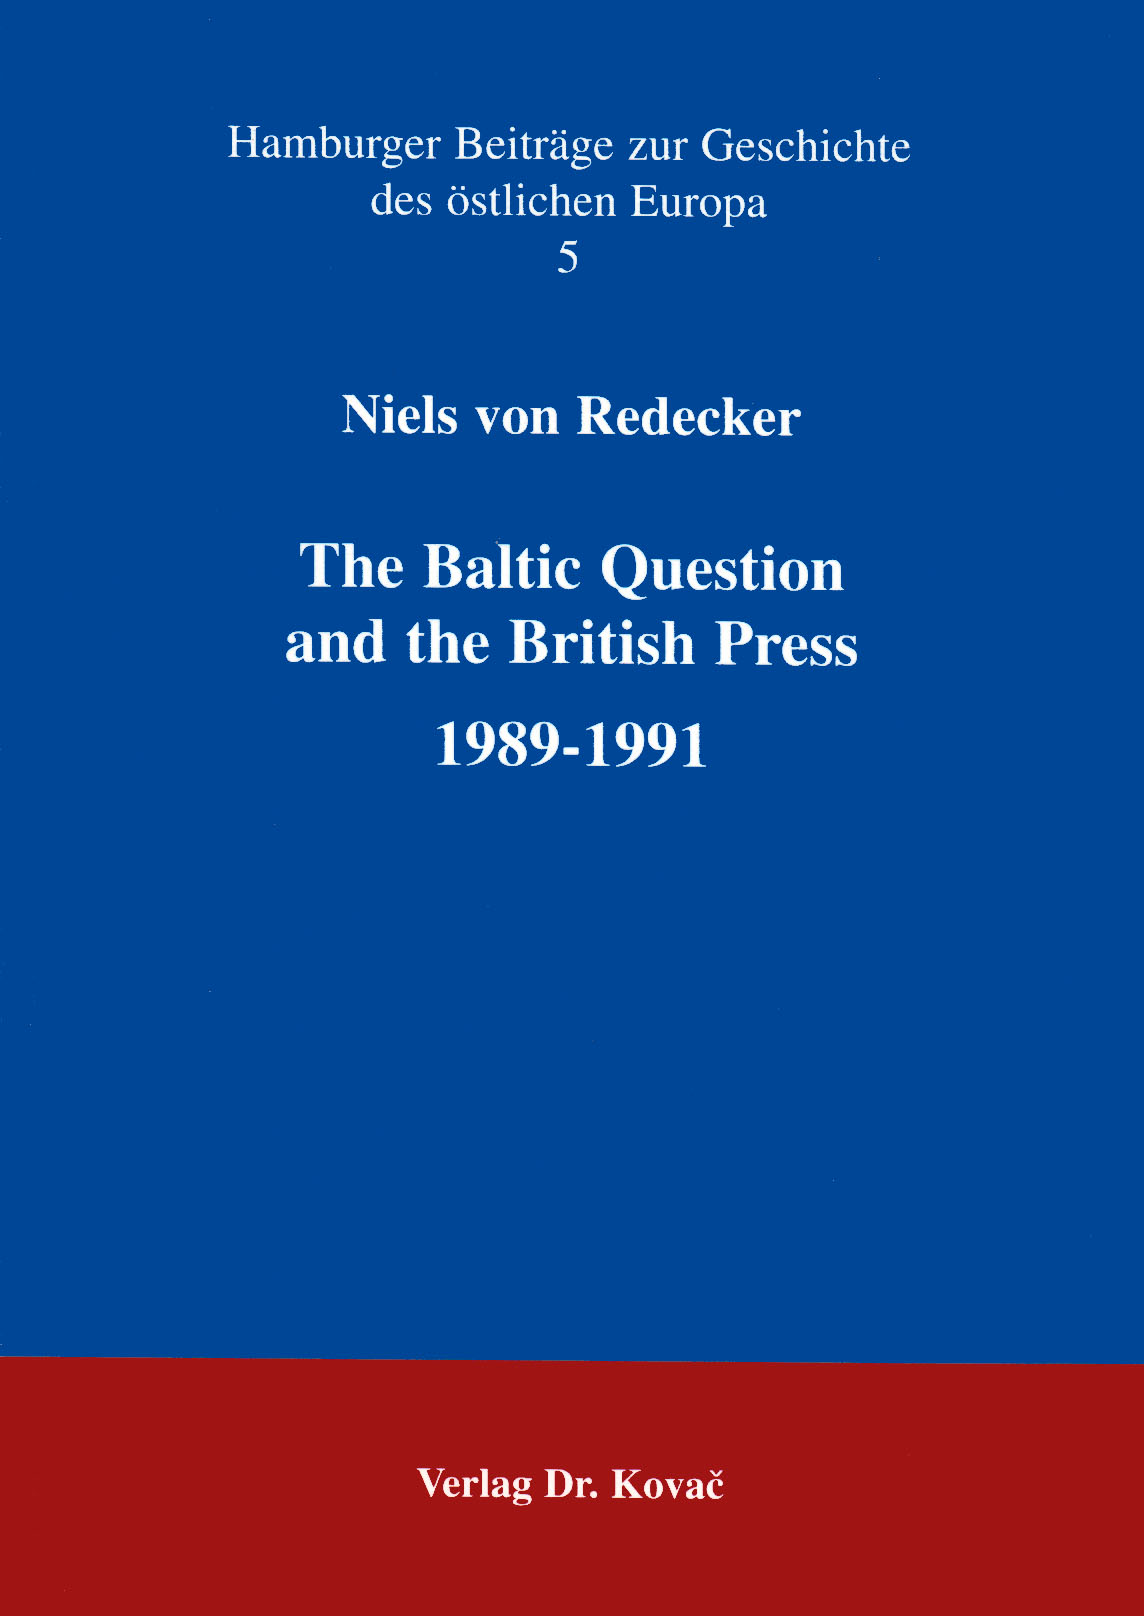 Cover: The Baltic Question and the British Press 1989-1991